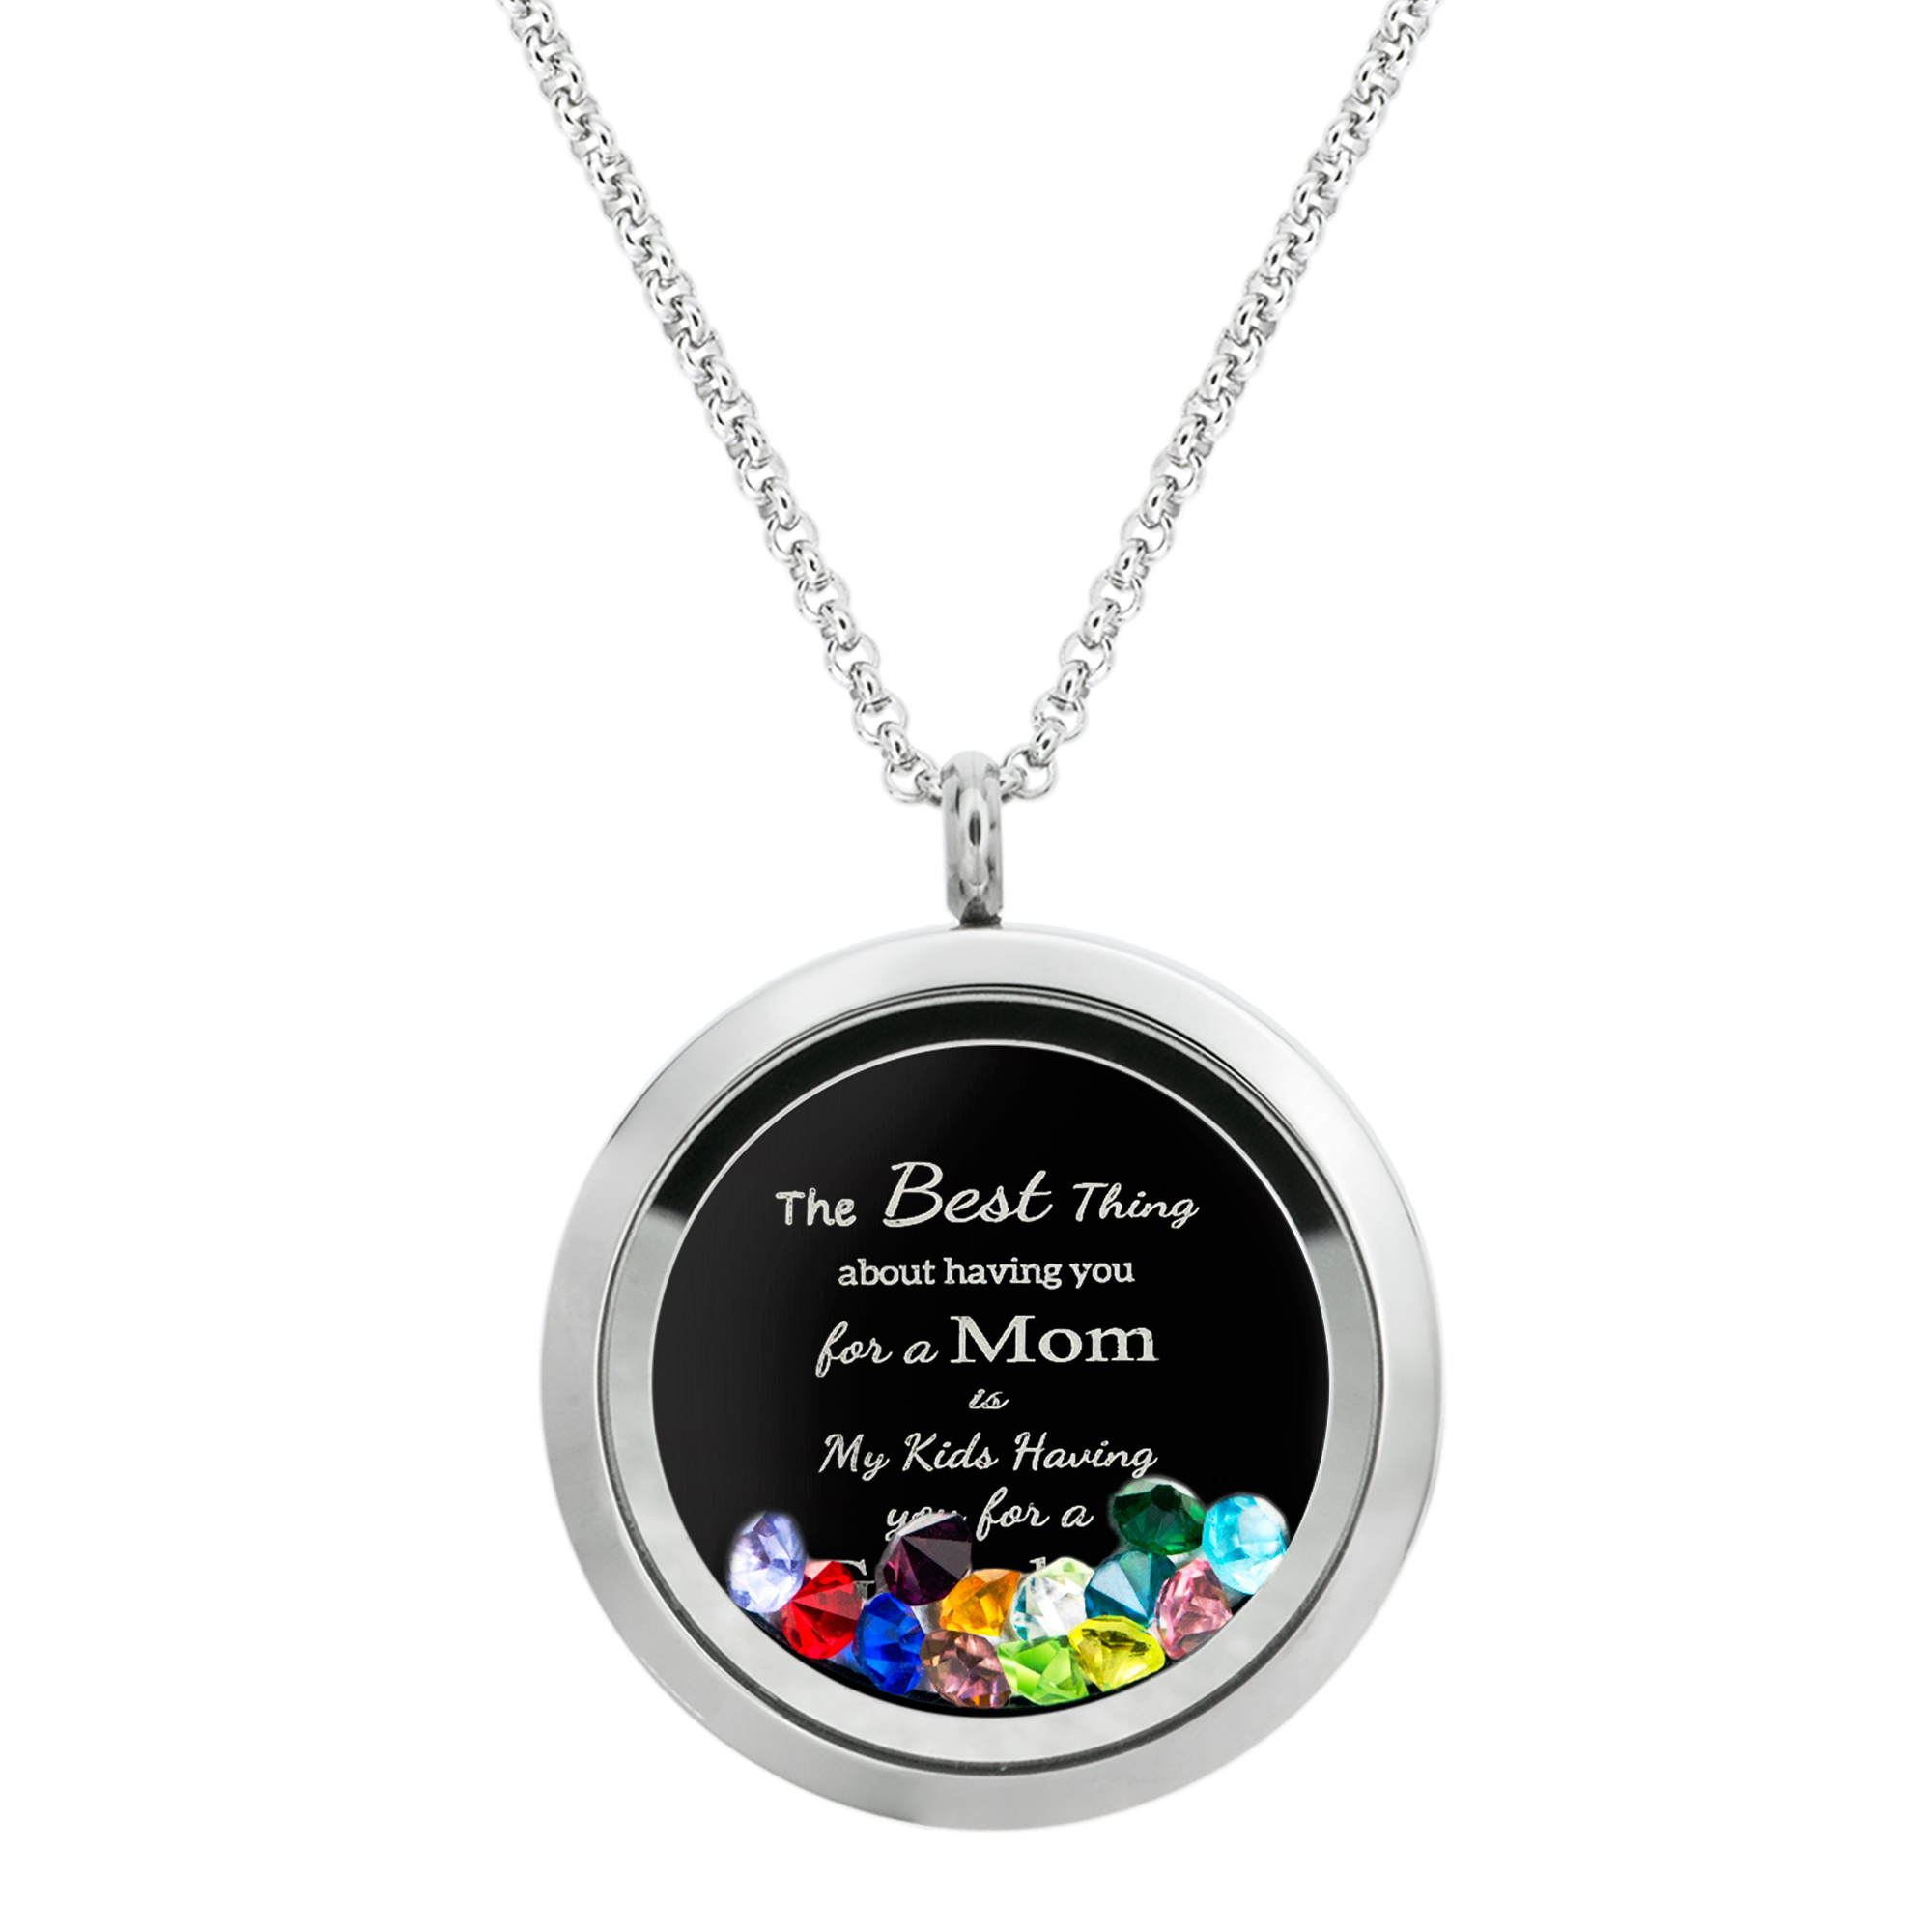 Best Mom Mother Stainless Steel Laser Engraved Text Message Floating Locket Crystals Necklace Pendant Mix Colors